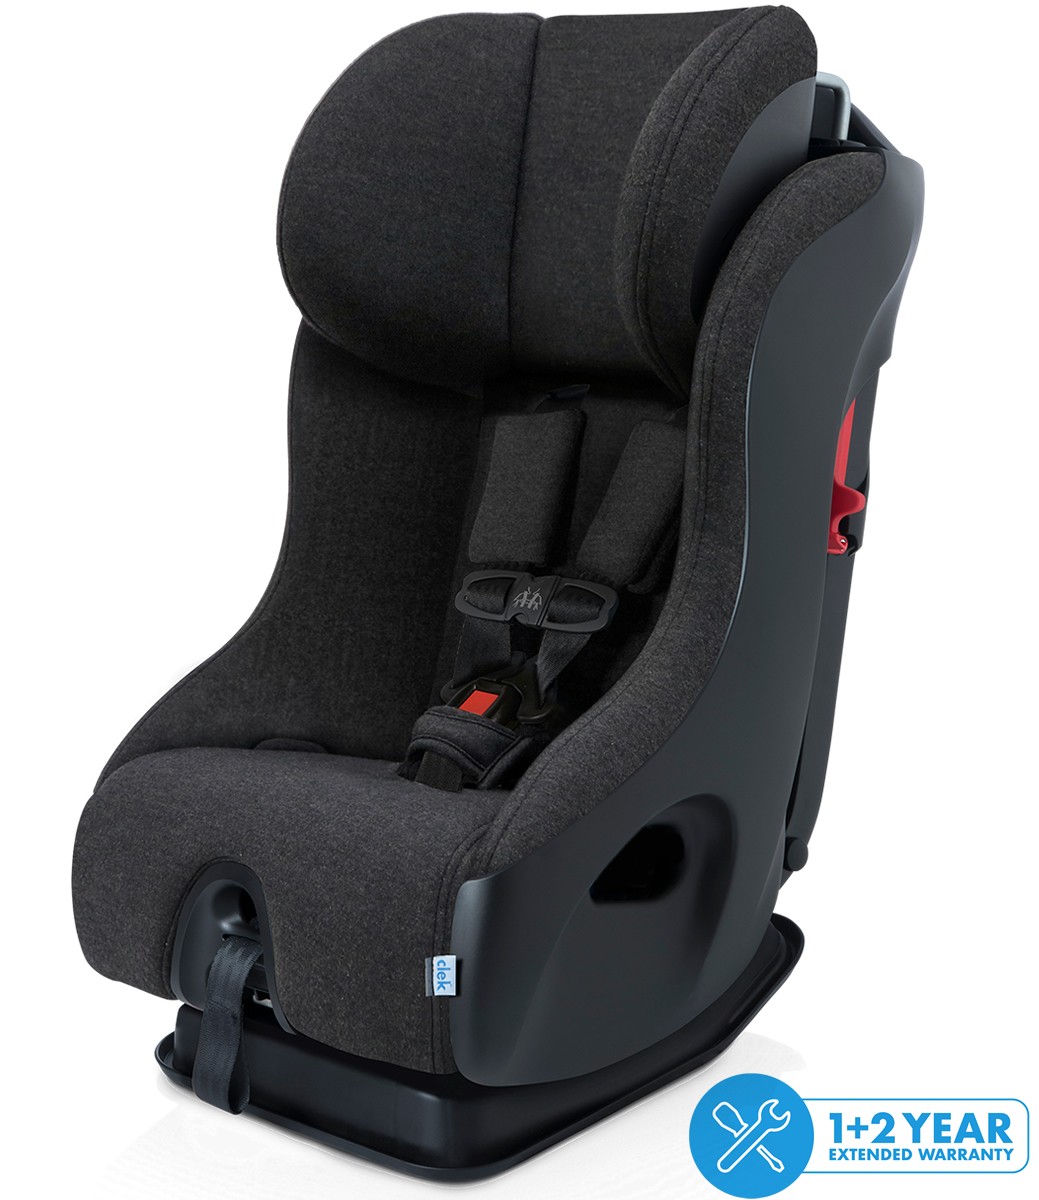 Clek Fllo 2018 Convertible Car Seat - Mammoth Wool